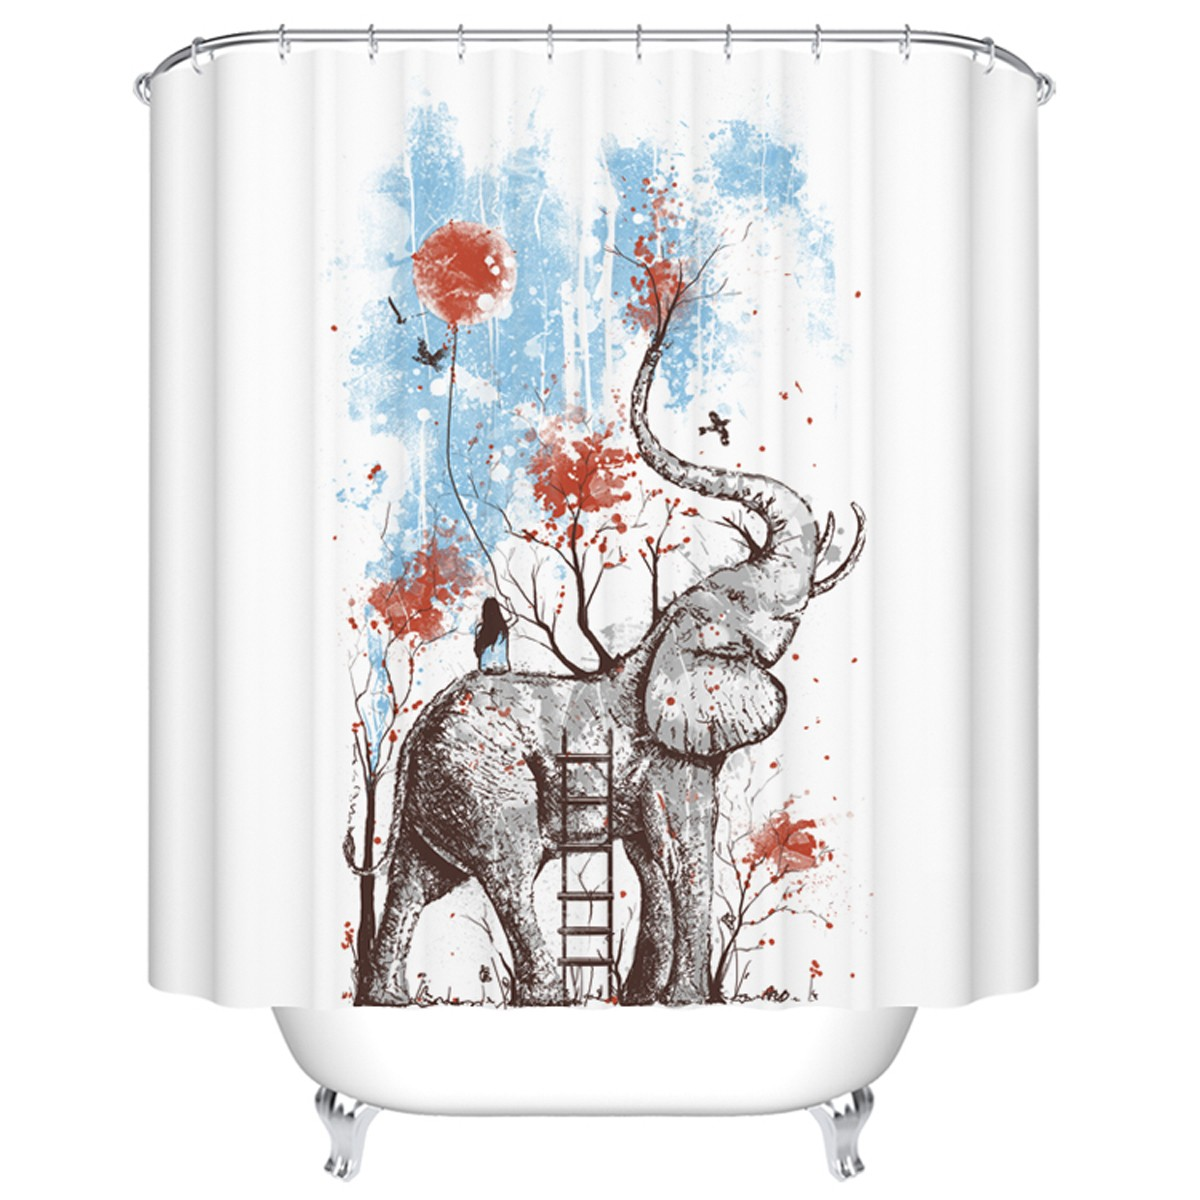 "Bathroom Waterproof Shower Curtain, 70"" W x 72"" H (DK-YT018)"